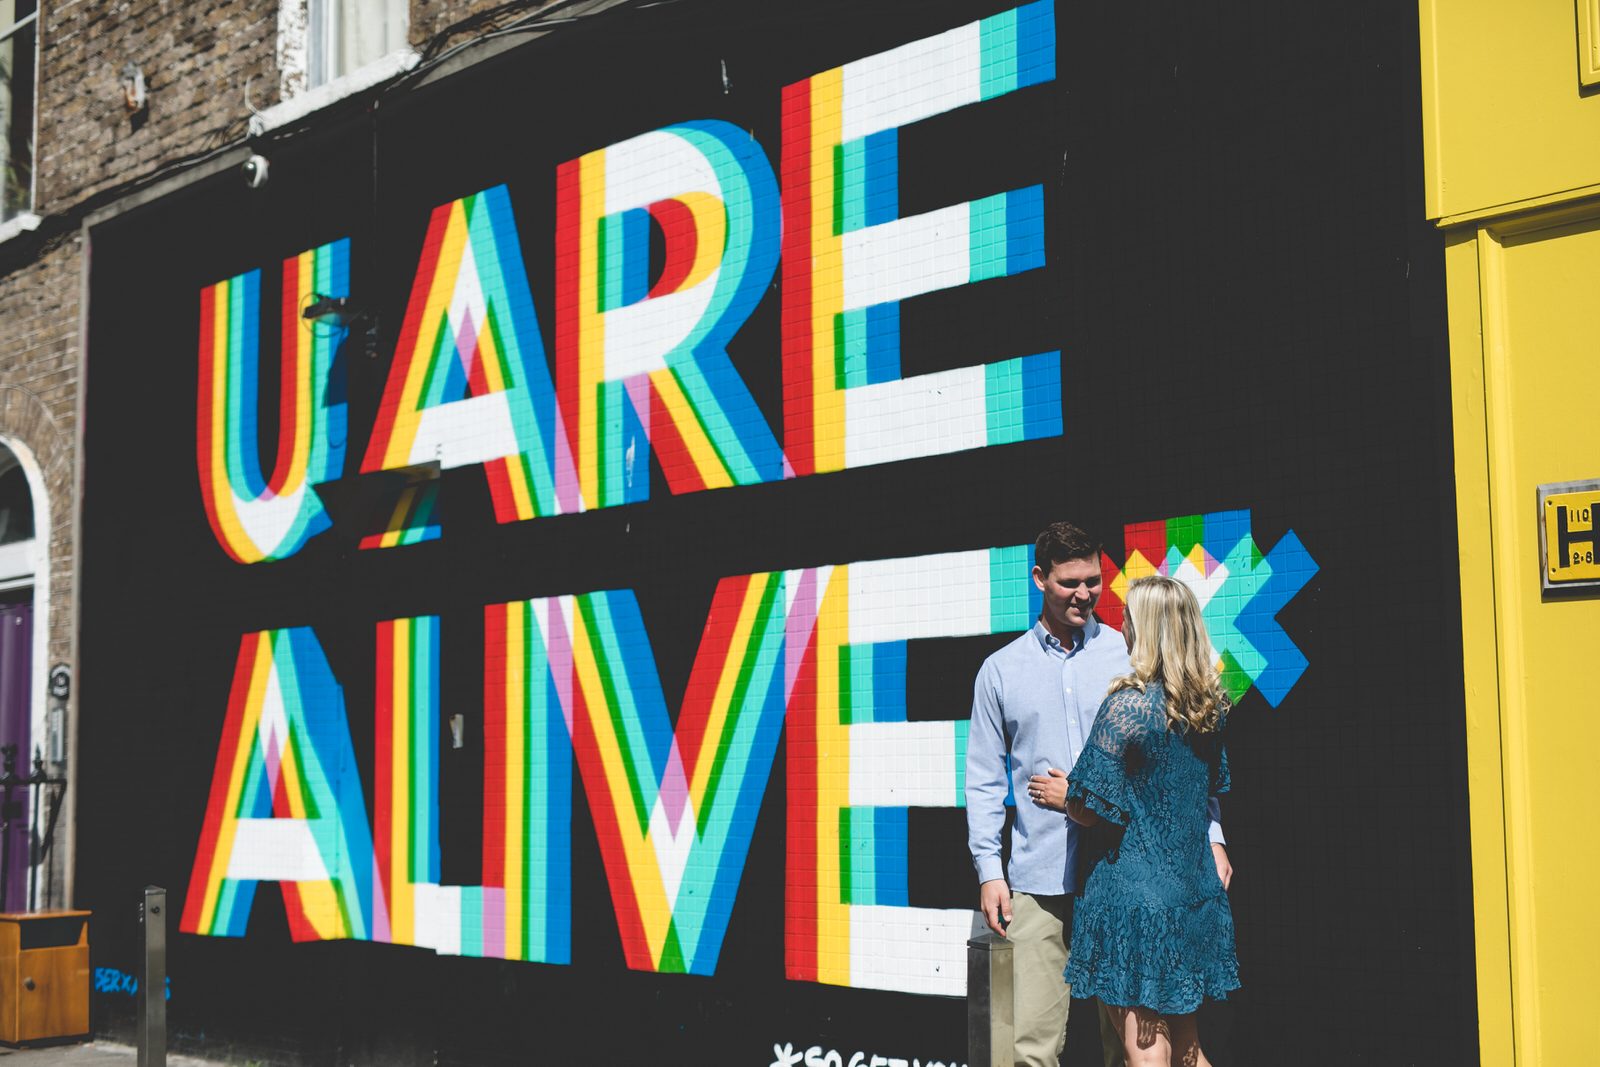 u are alive graffiti mural dublin